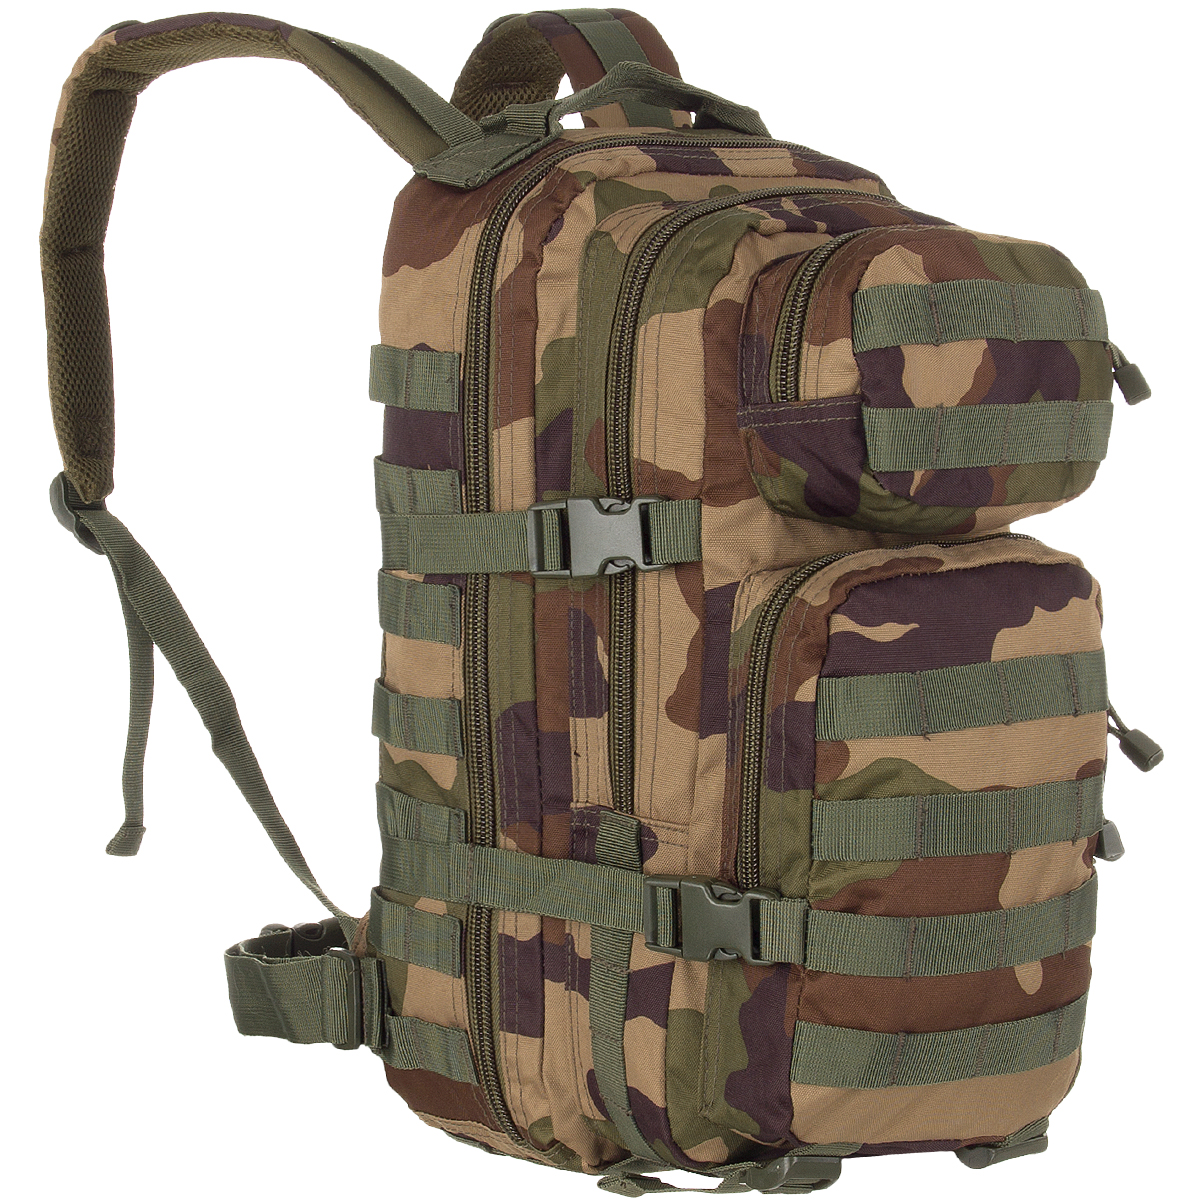 Tactical Backpack Assault Pack MOLLE System Rucksack 20L Hiking French CCE Camo